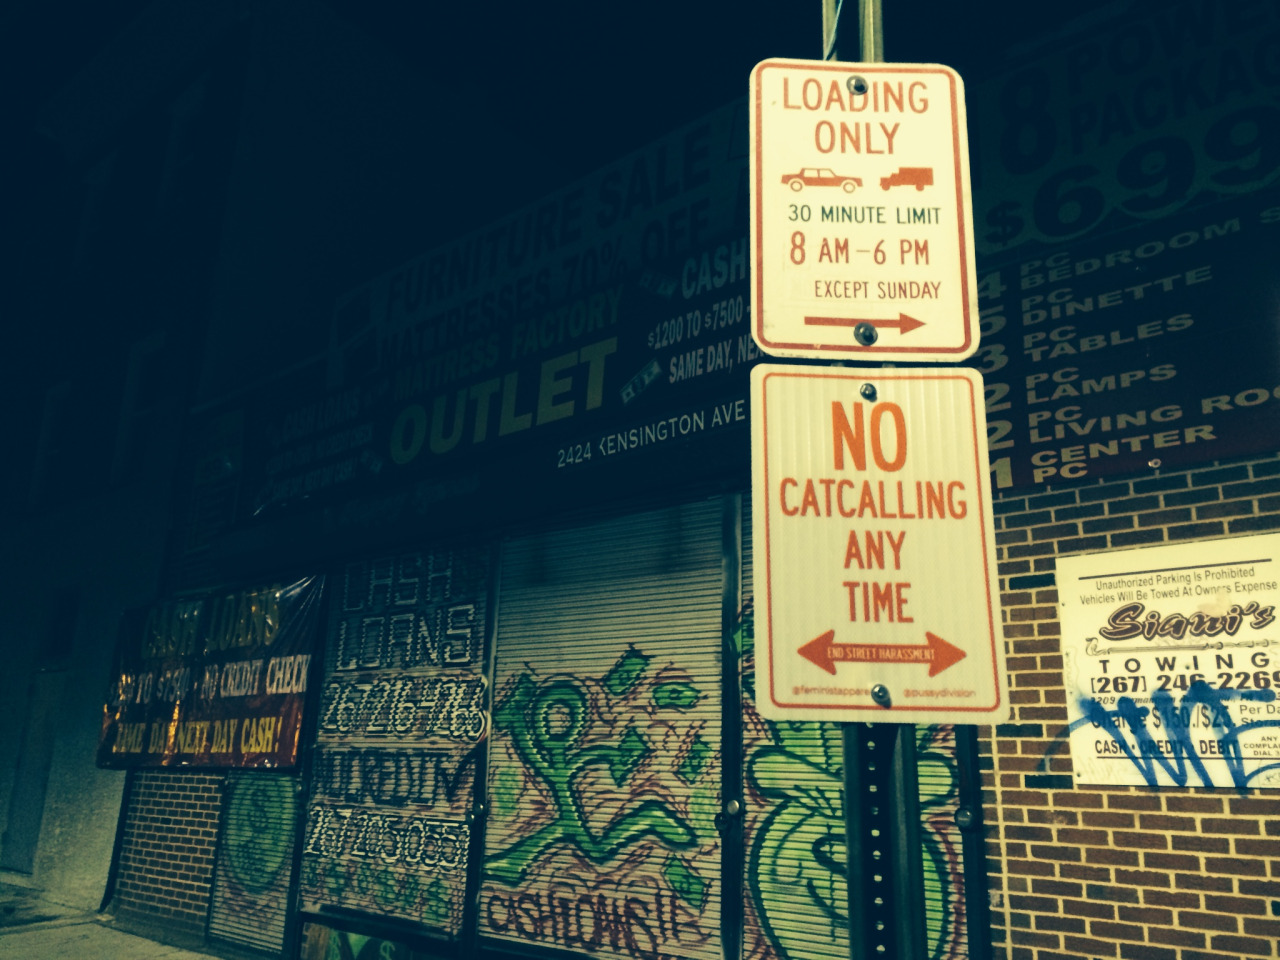 """No catcalling any time"" sign"